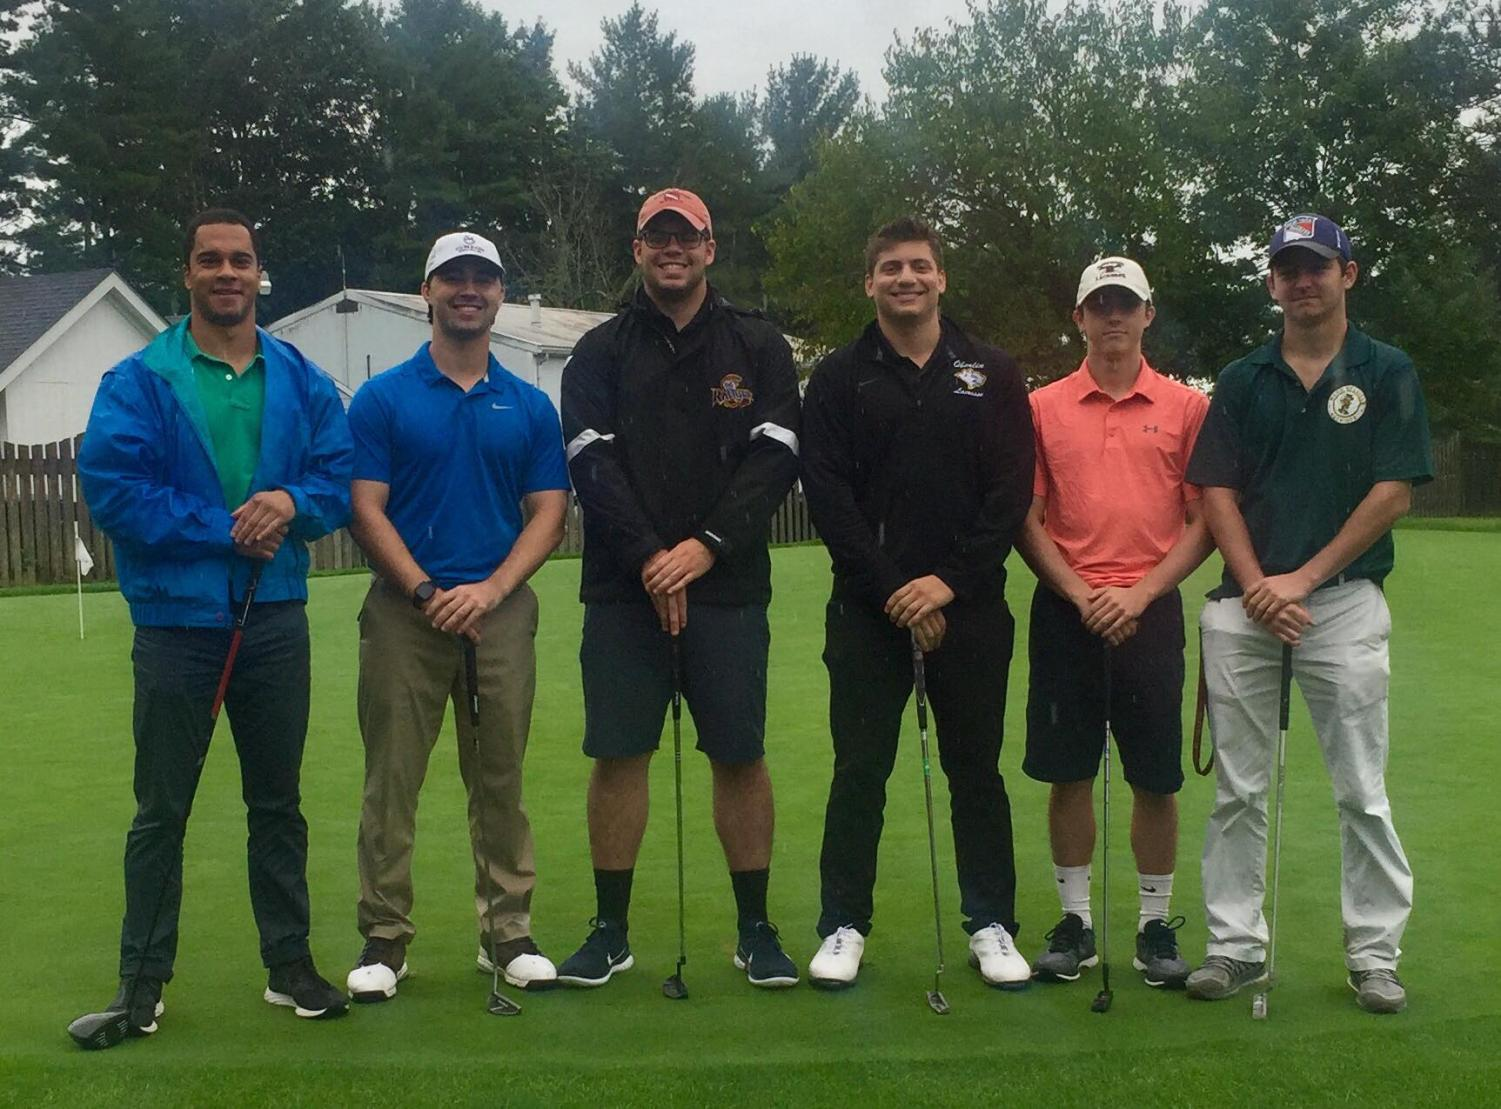 The club golf team is open to anyone who loves to golf or wants to learn the sport. The team brings together athletes from a variety of backgrounds, such as men's lacrosse, baseball, and swimming and diving, as well as non-athletes with a passion for golf.